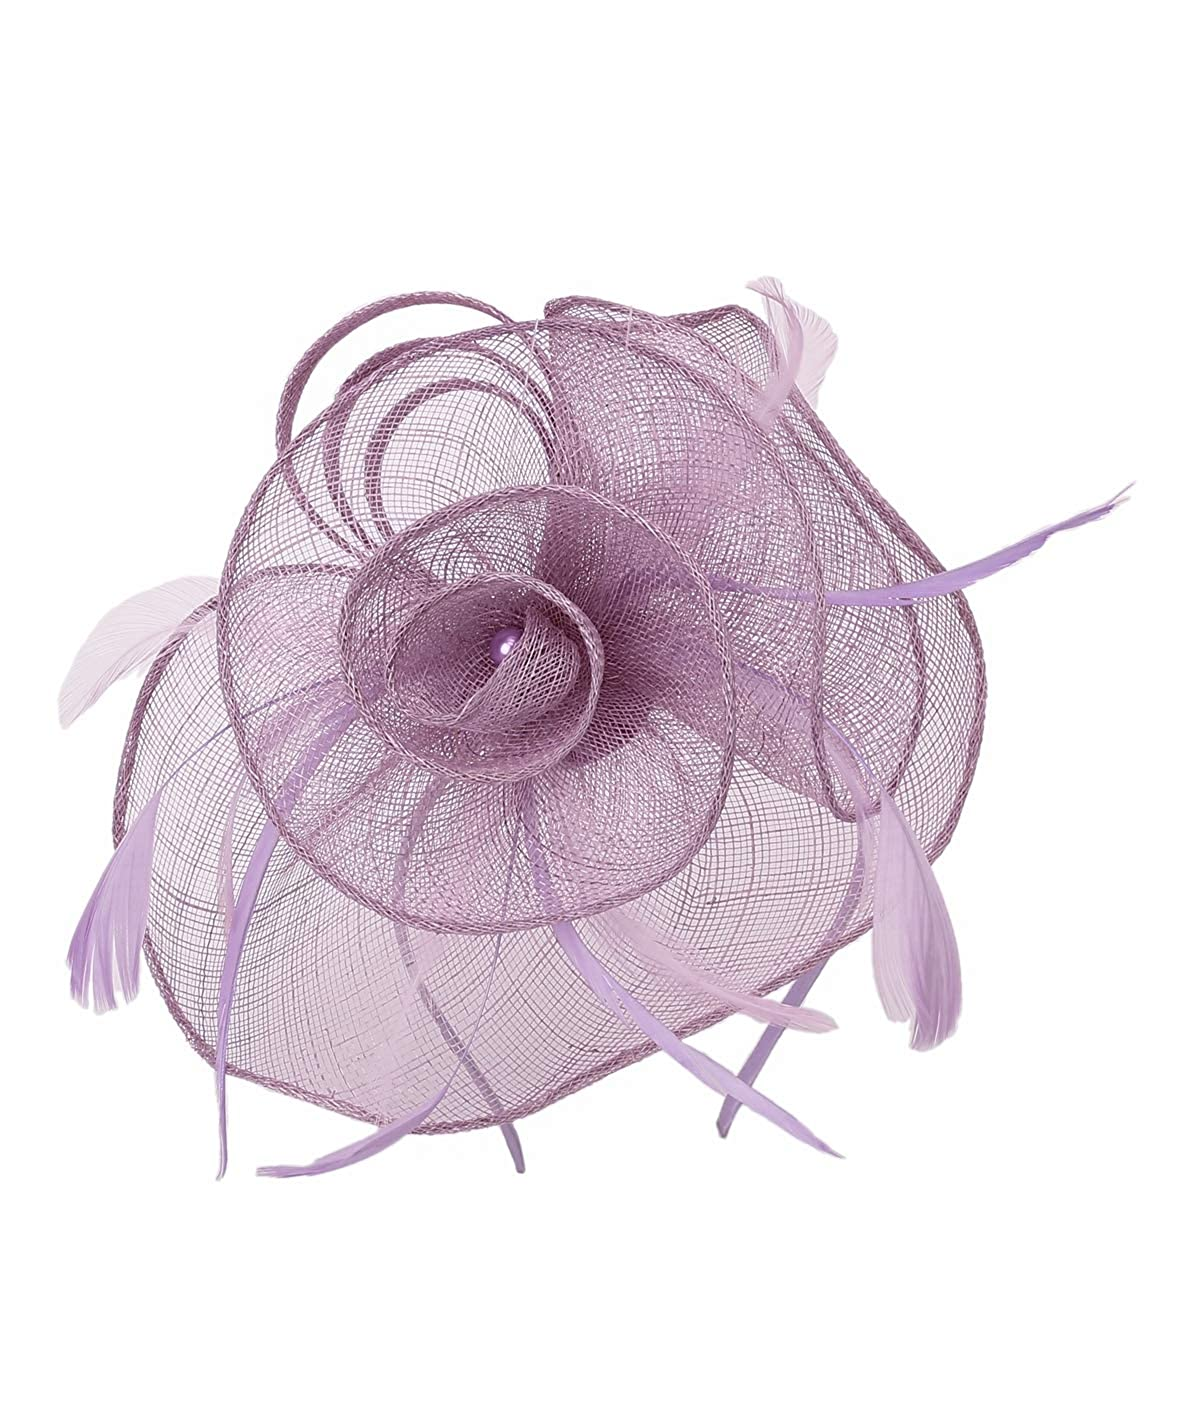 Felizhouse Sinamay Fascinators Wedding Hats for Women Royal Ascot Cocktail Party Headband Ladies Head Piece Flower Feather Veil Derby Pillbox Hat Hair Clip